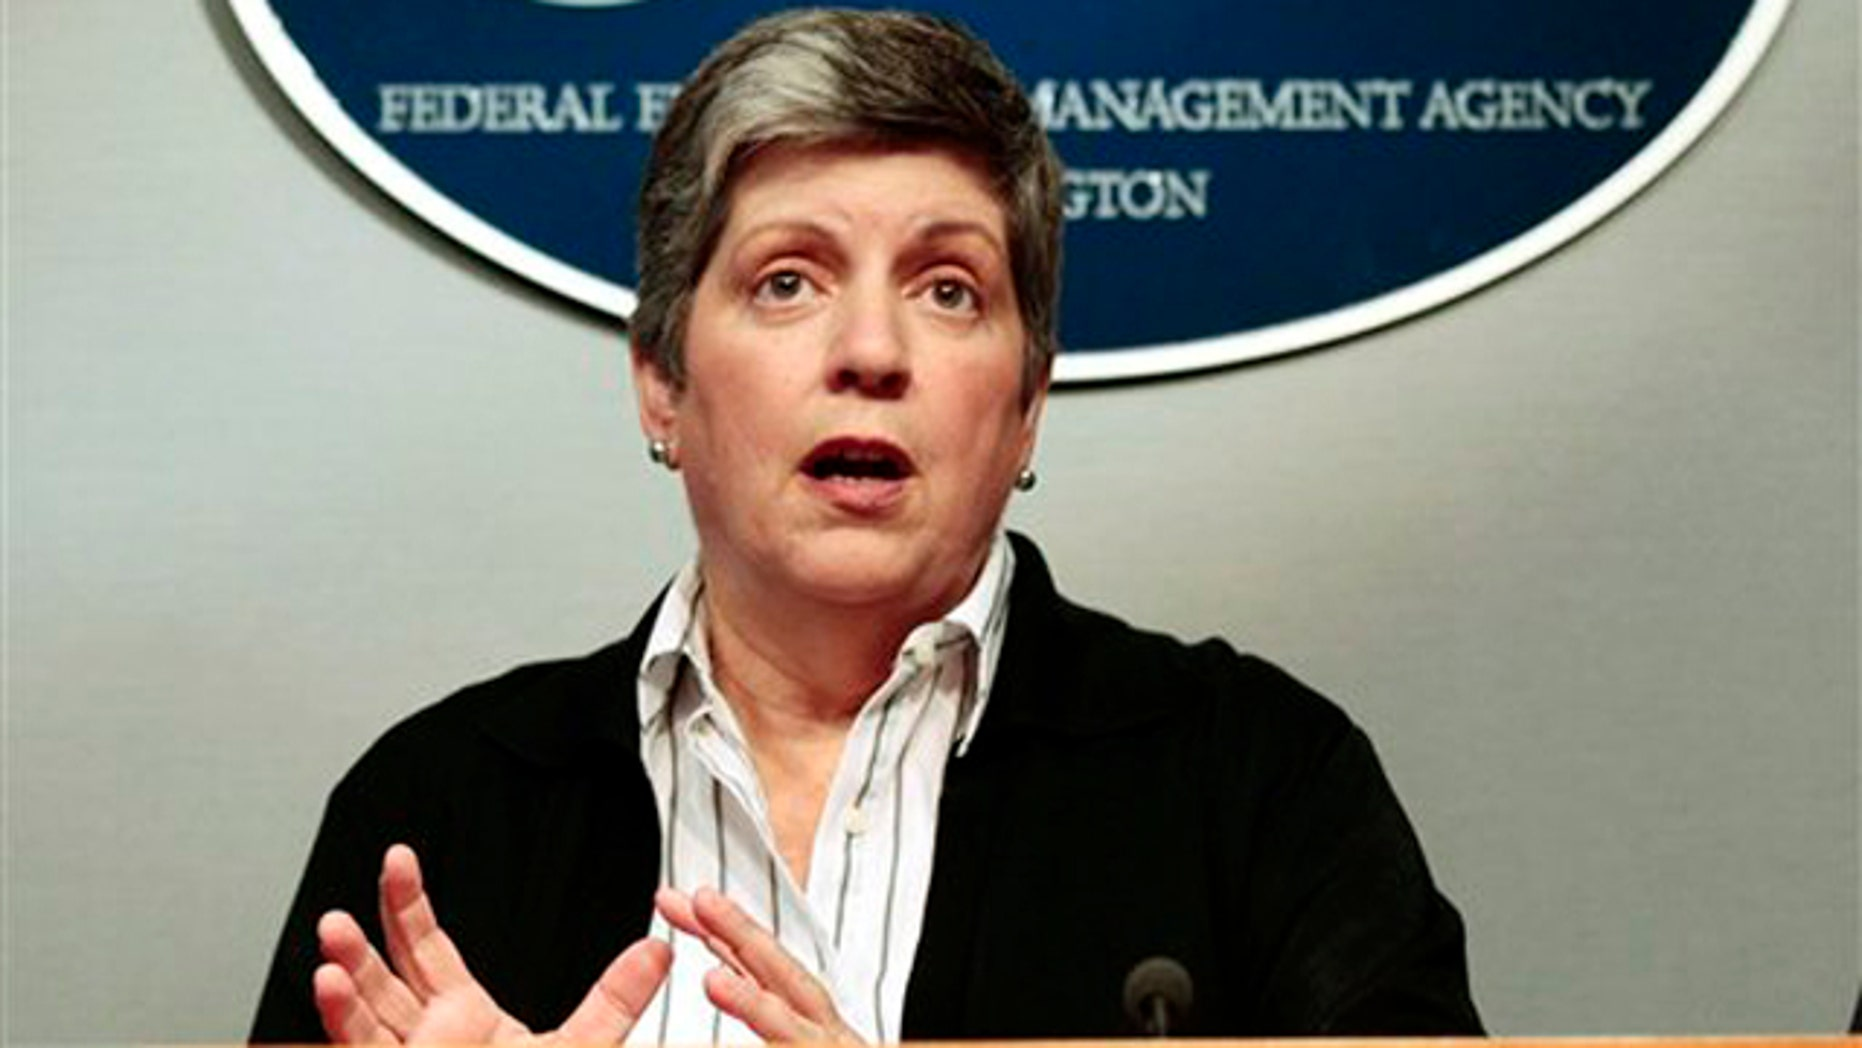 Homeland Security Secretary Janet Napolitano speaks at FEMA headquarters in Washington Aug. 28.